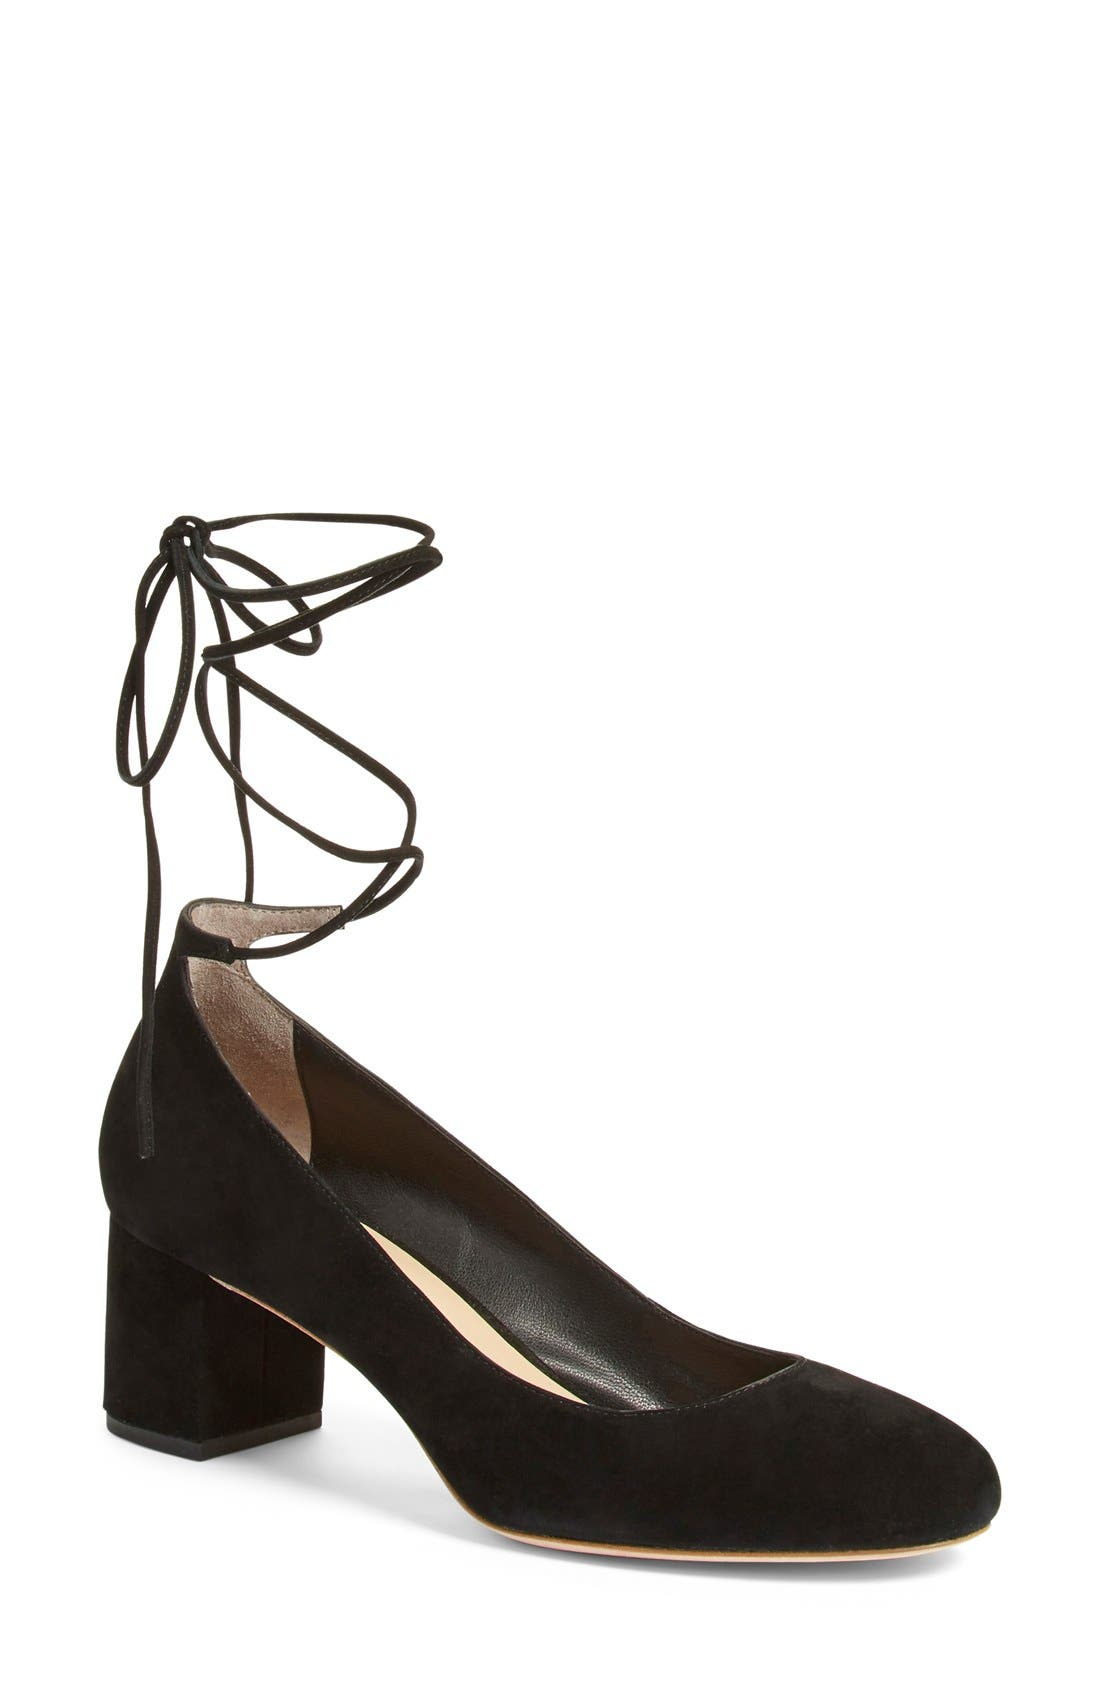 Alternate Image 1 Selected - Loeffler Randall 'Clara' Block Heel Pump (Women)